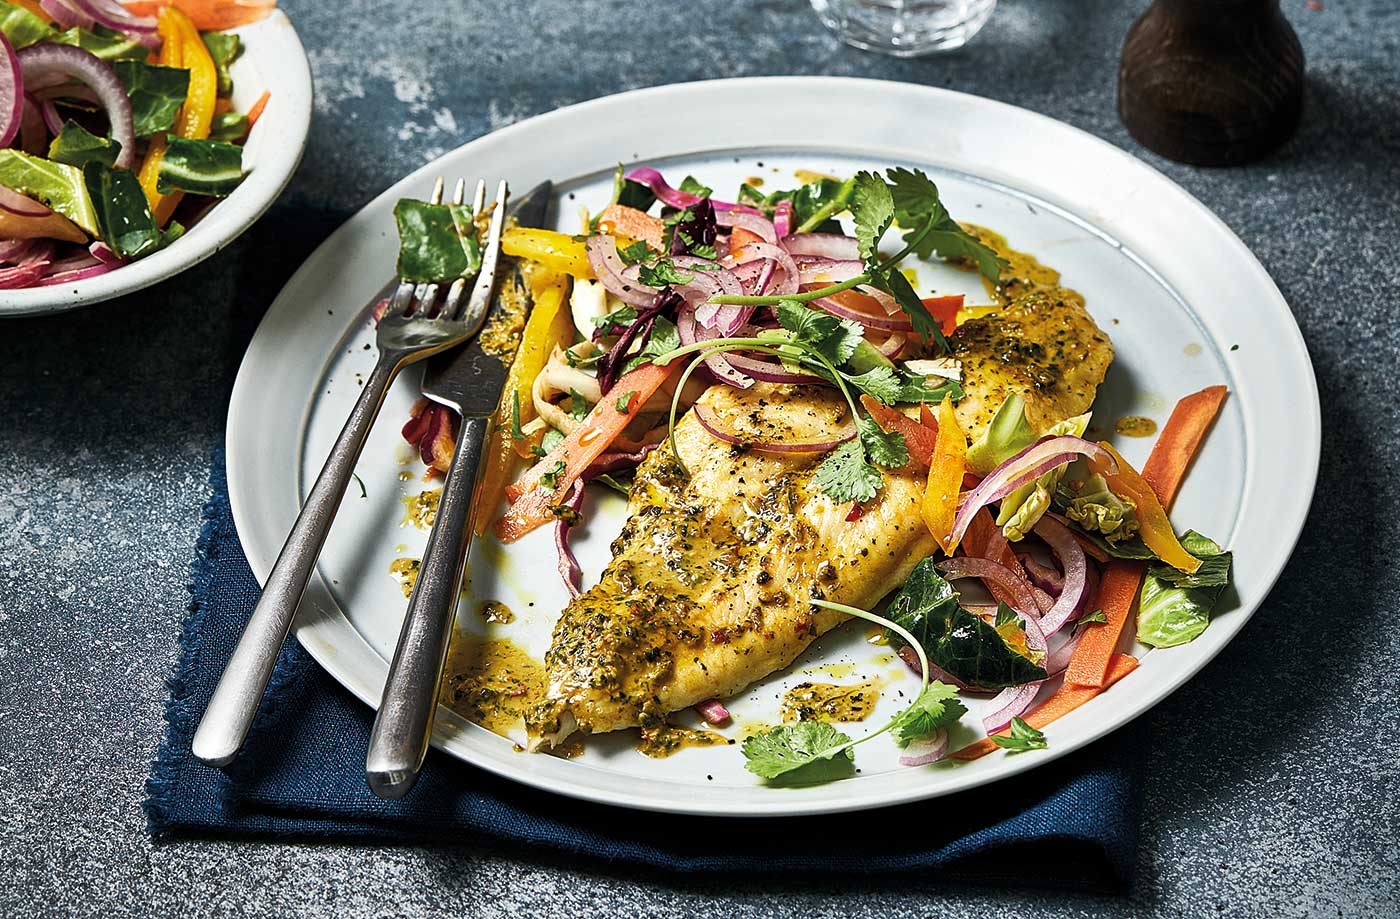 Peanut-crusted basa fillets recipe